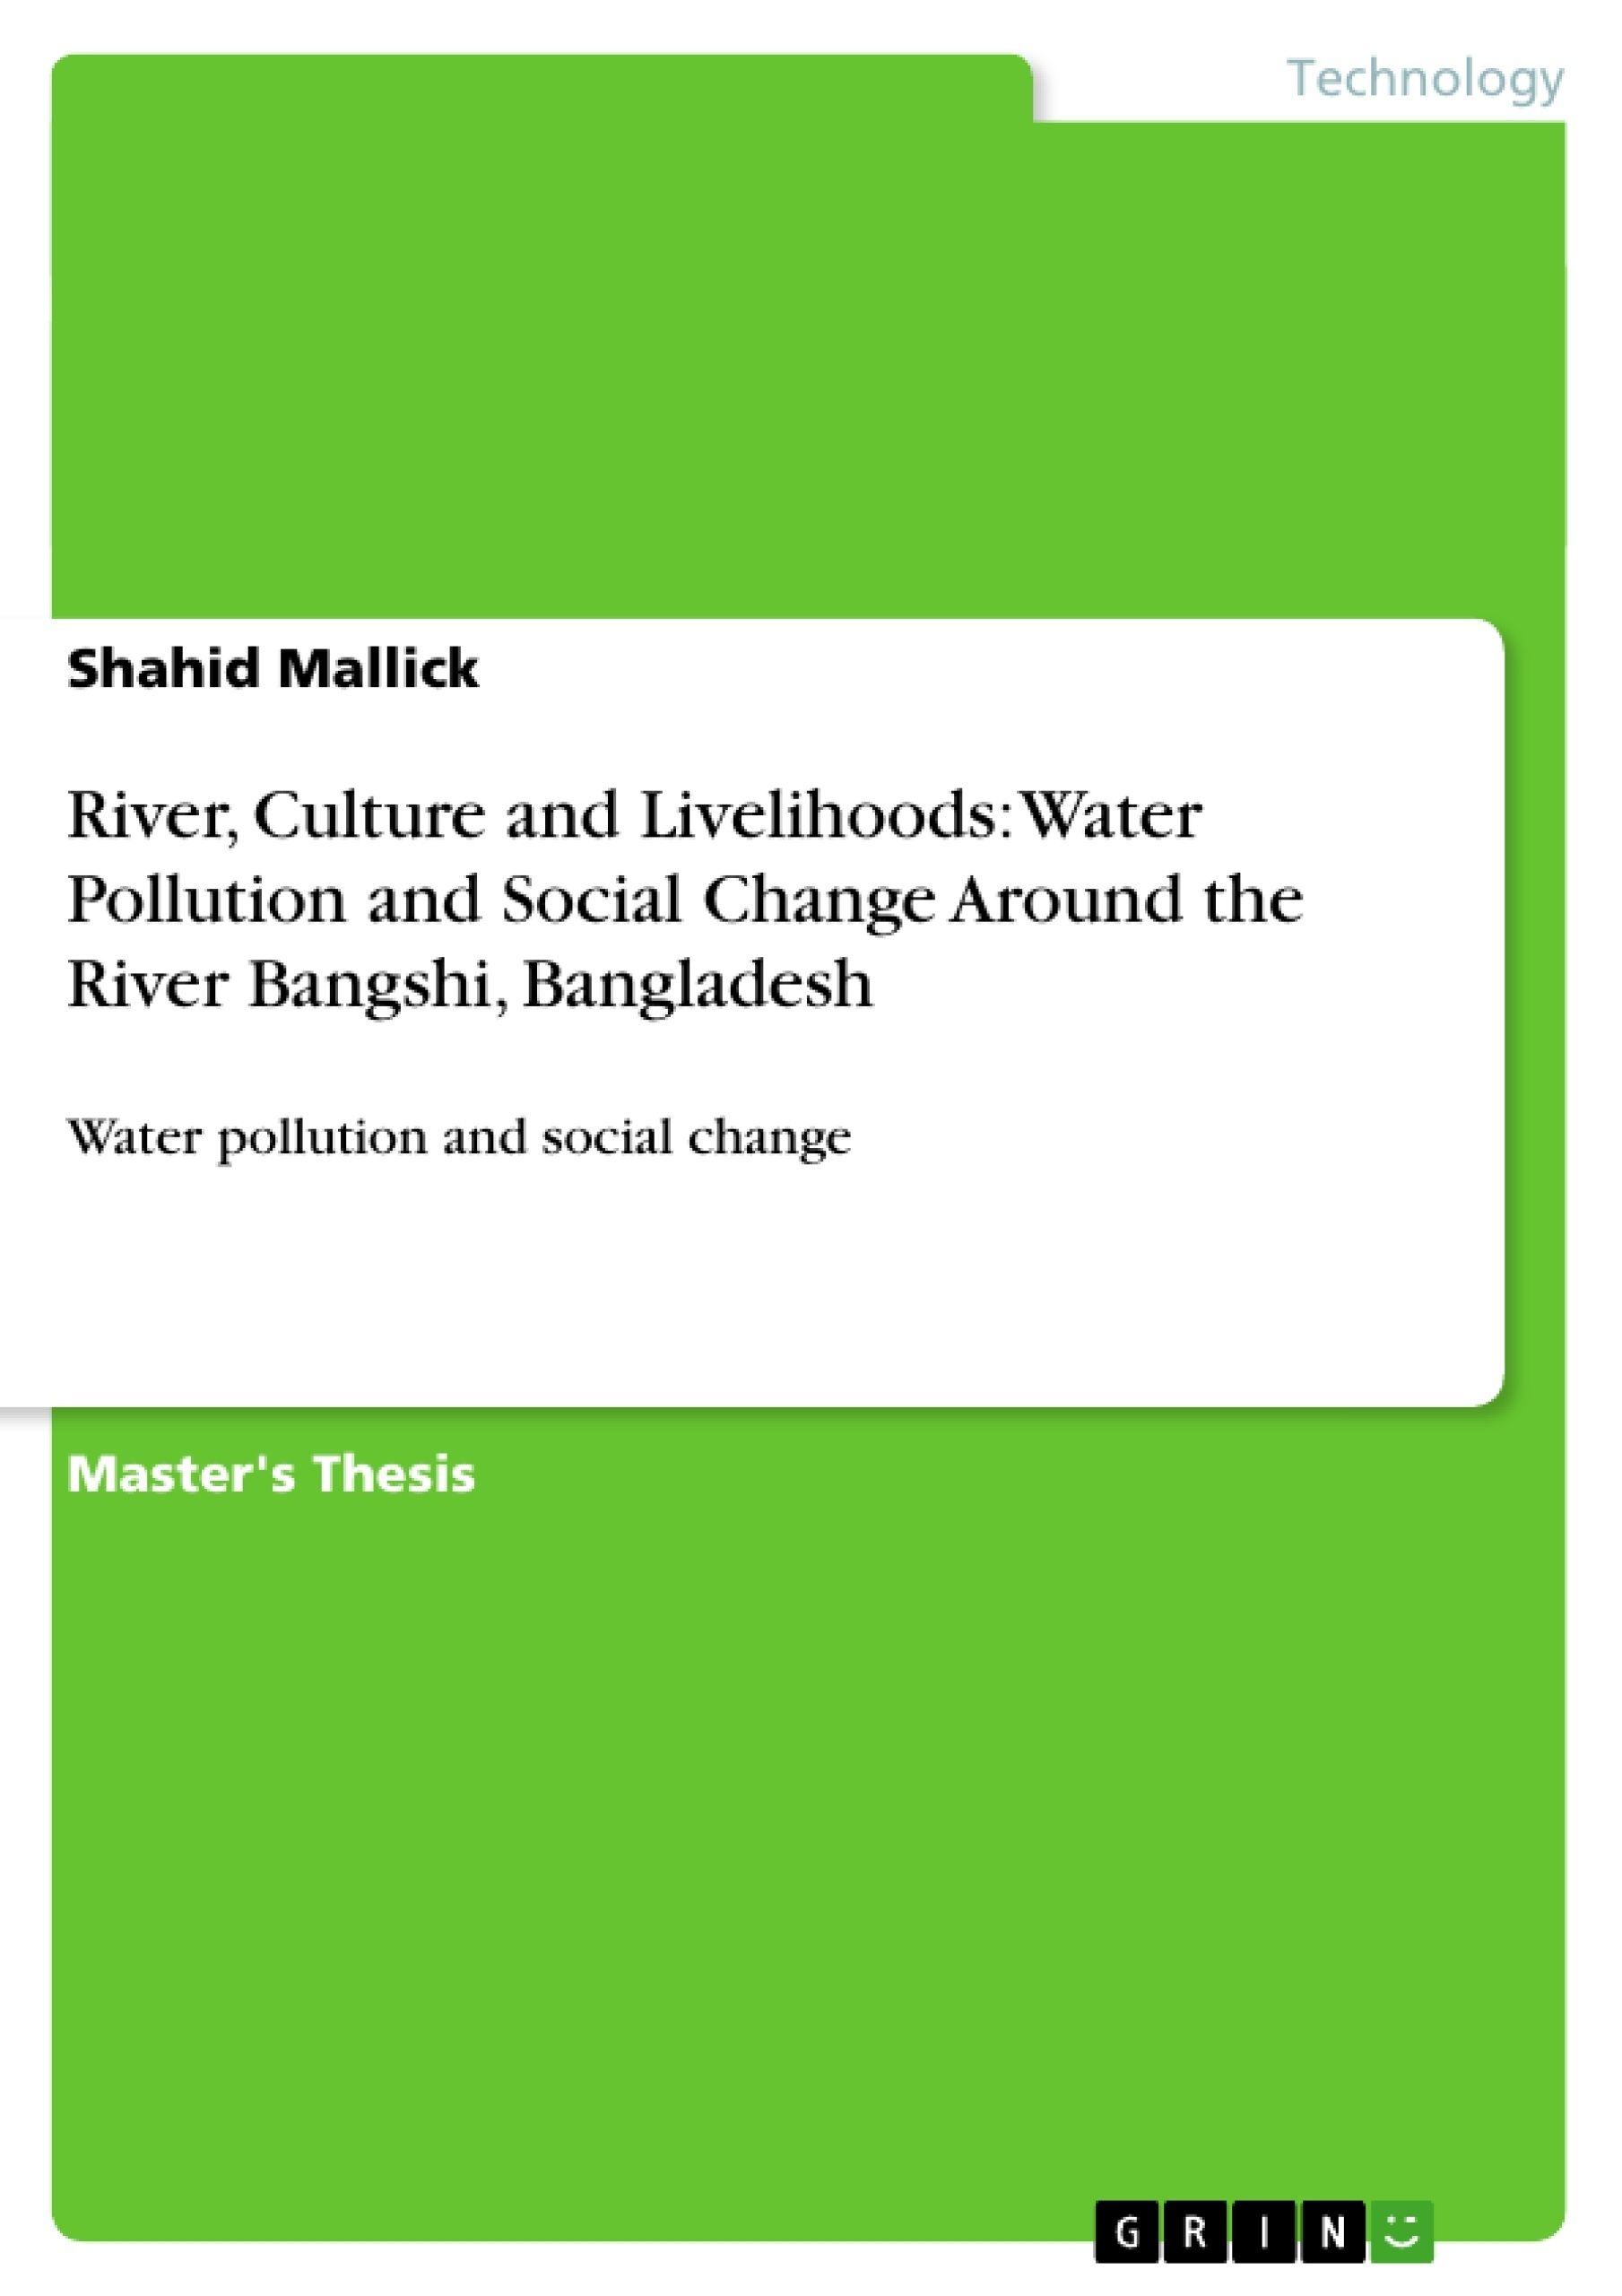 Title: River, Culture and Livelihoods: Water Pollution and Social Change Around the River Bangshi, Bangladesh